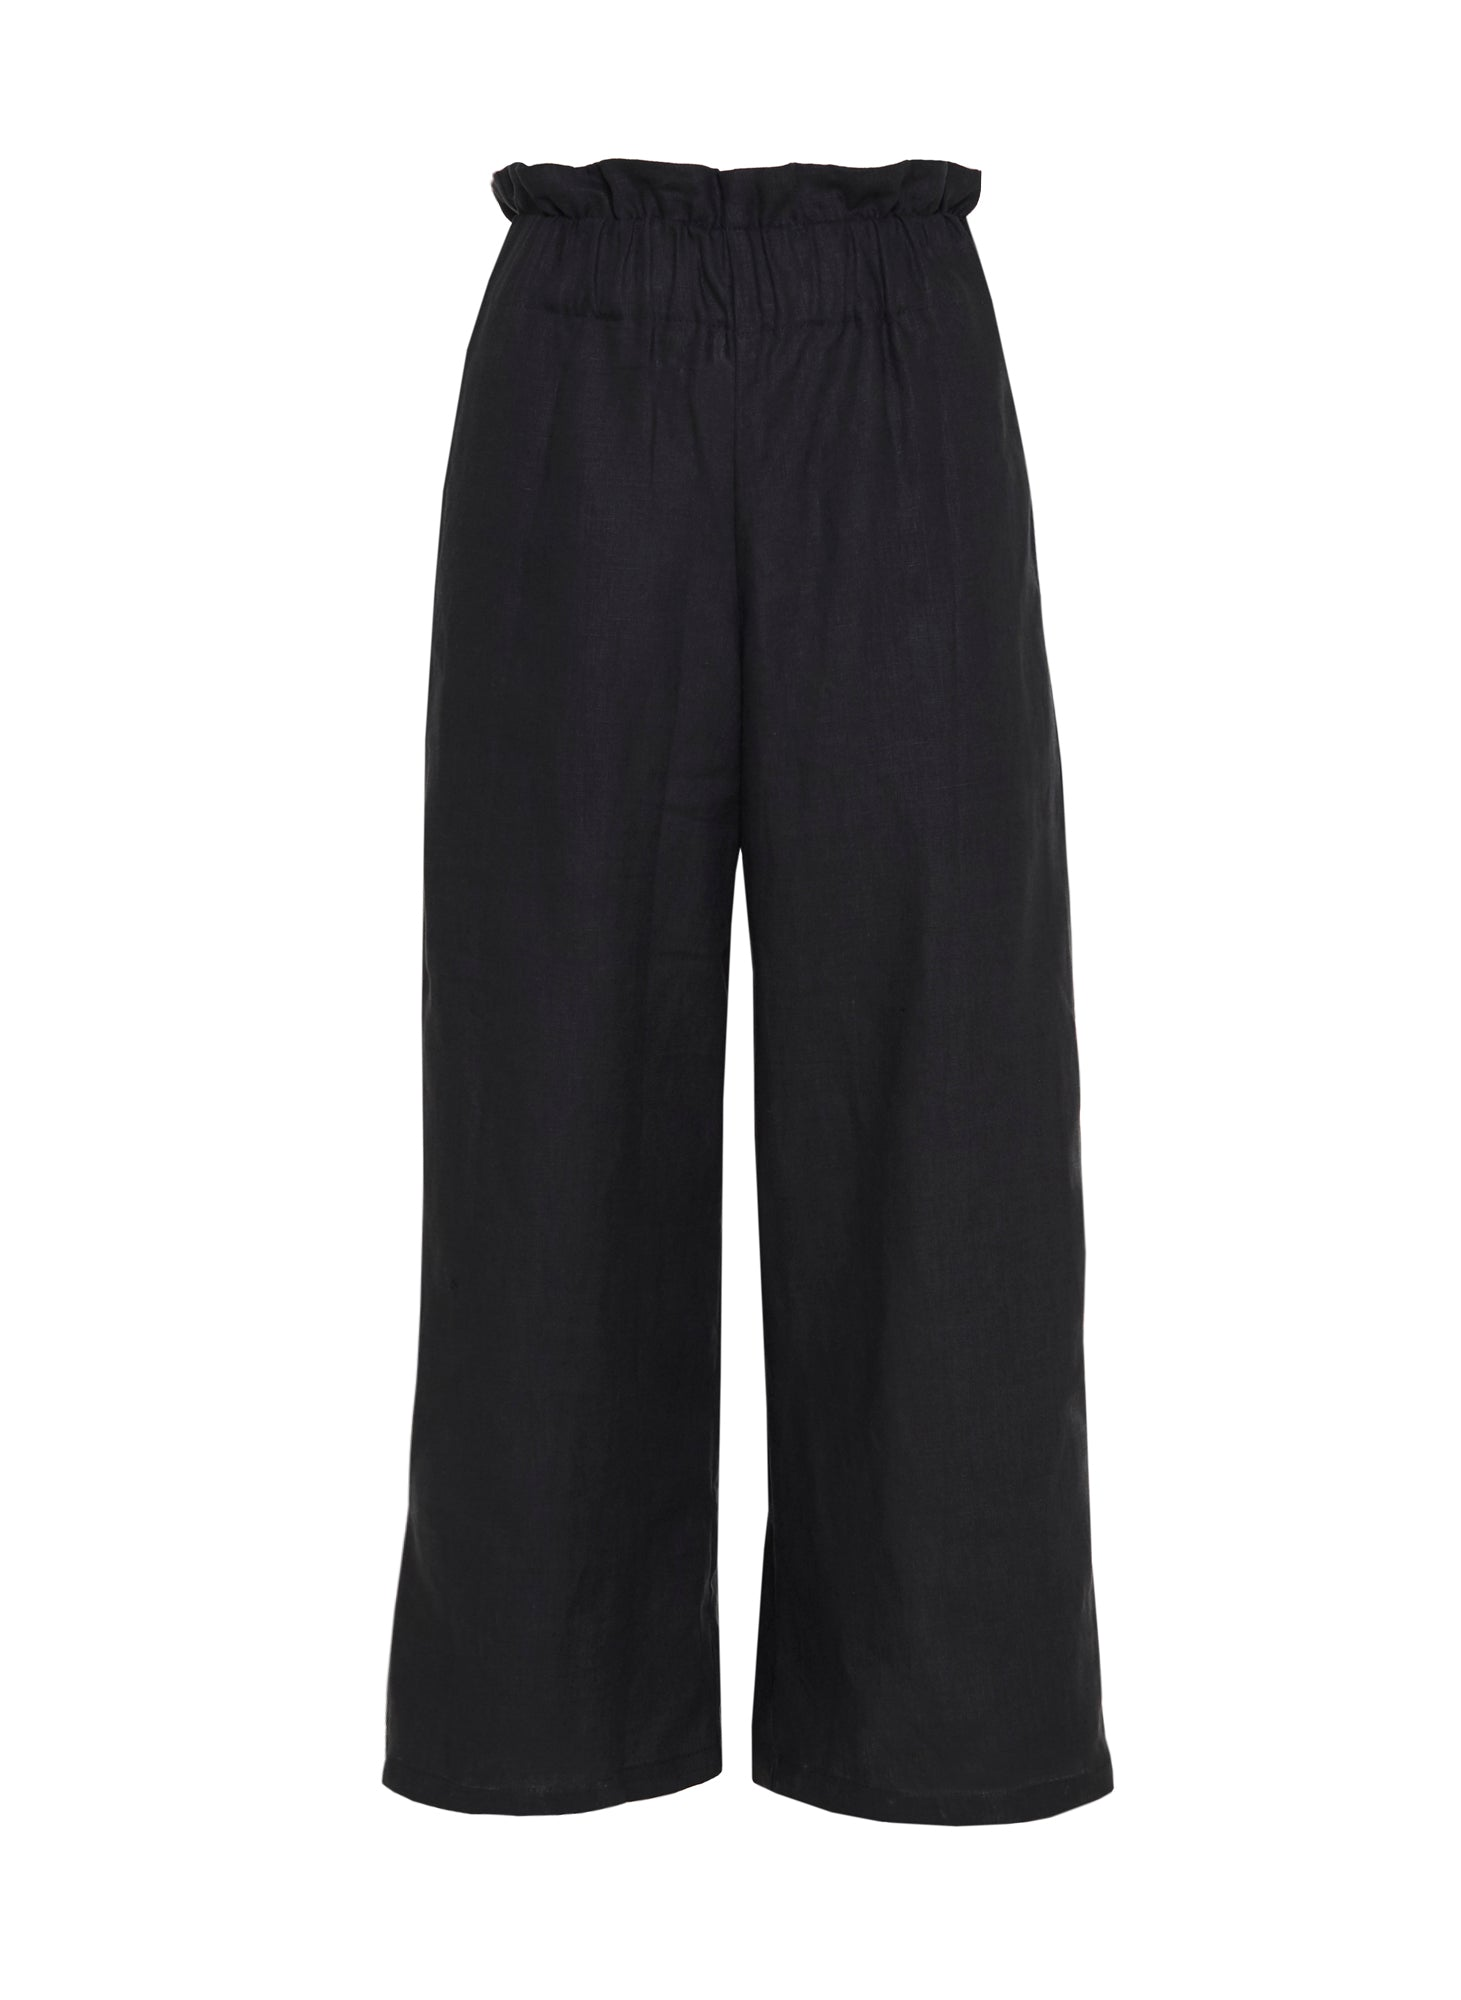 PLAIN BLACK - VARADERO PANTS